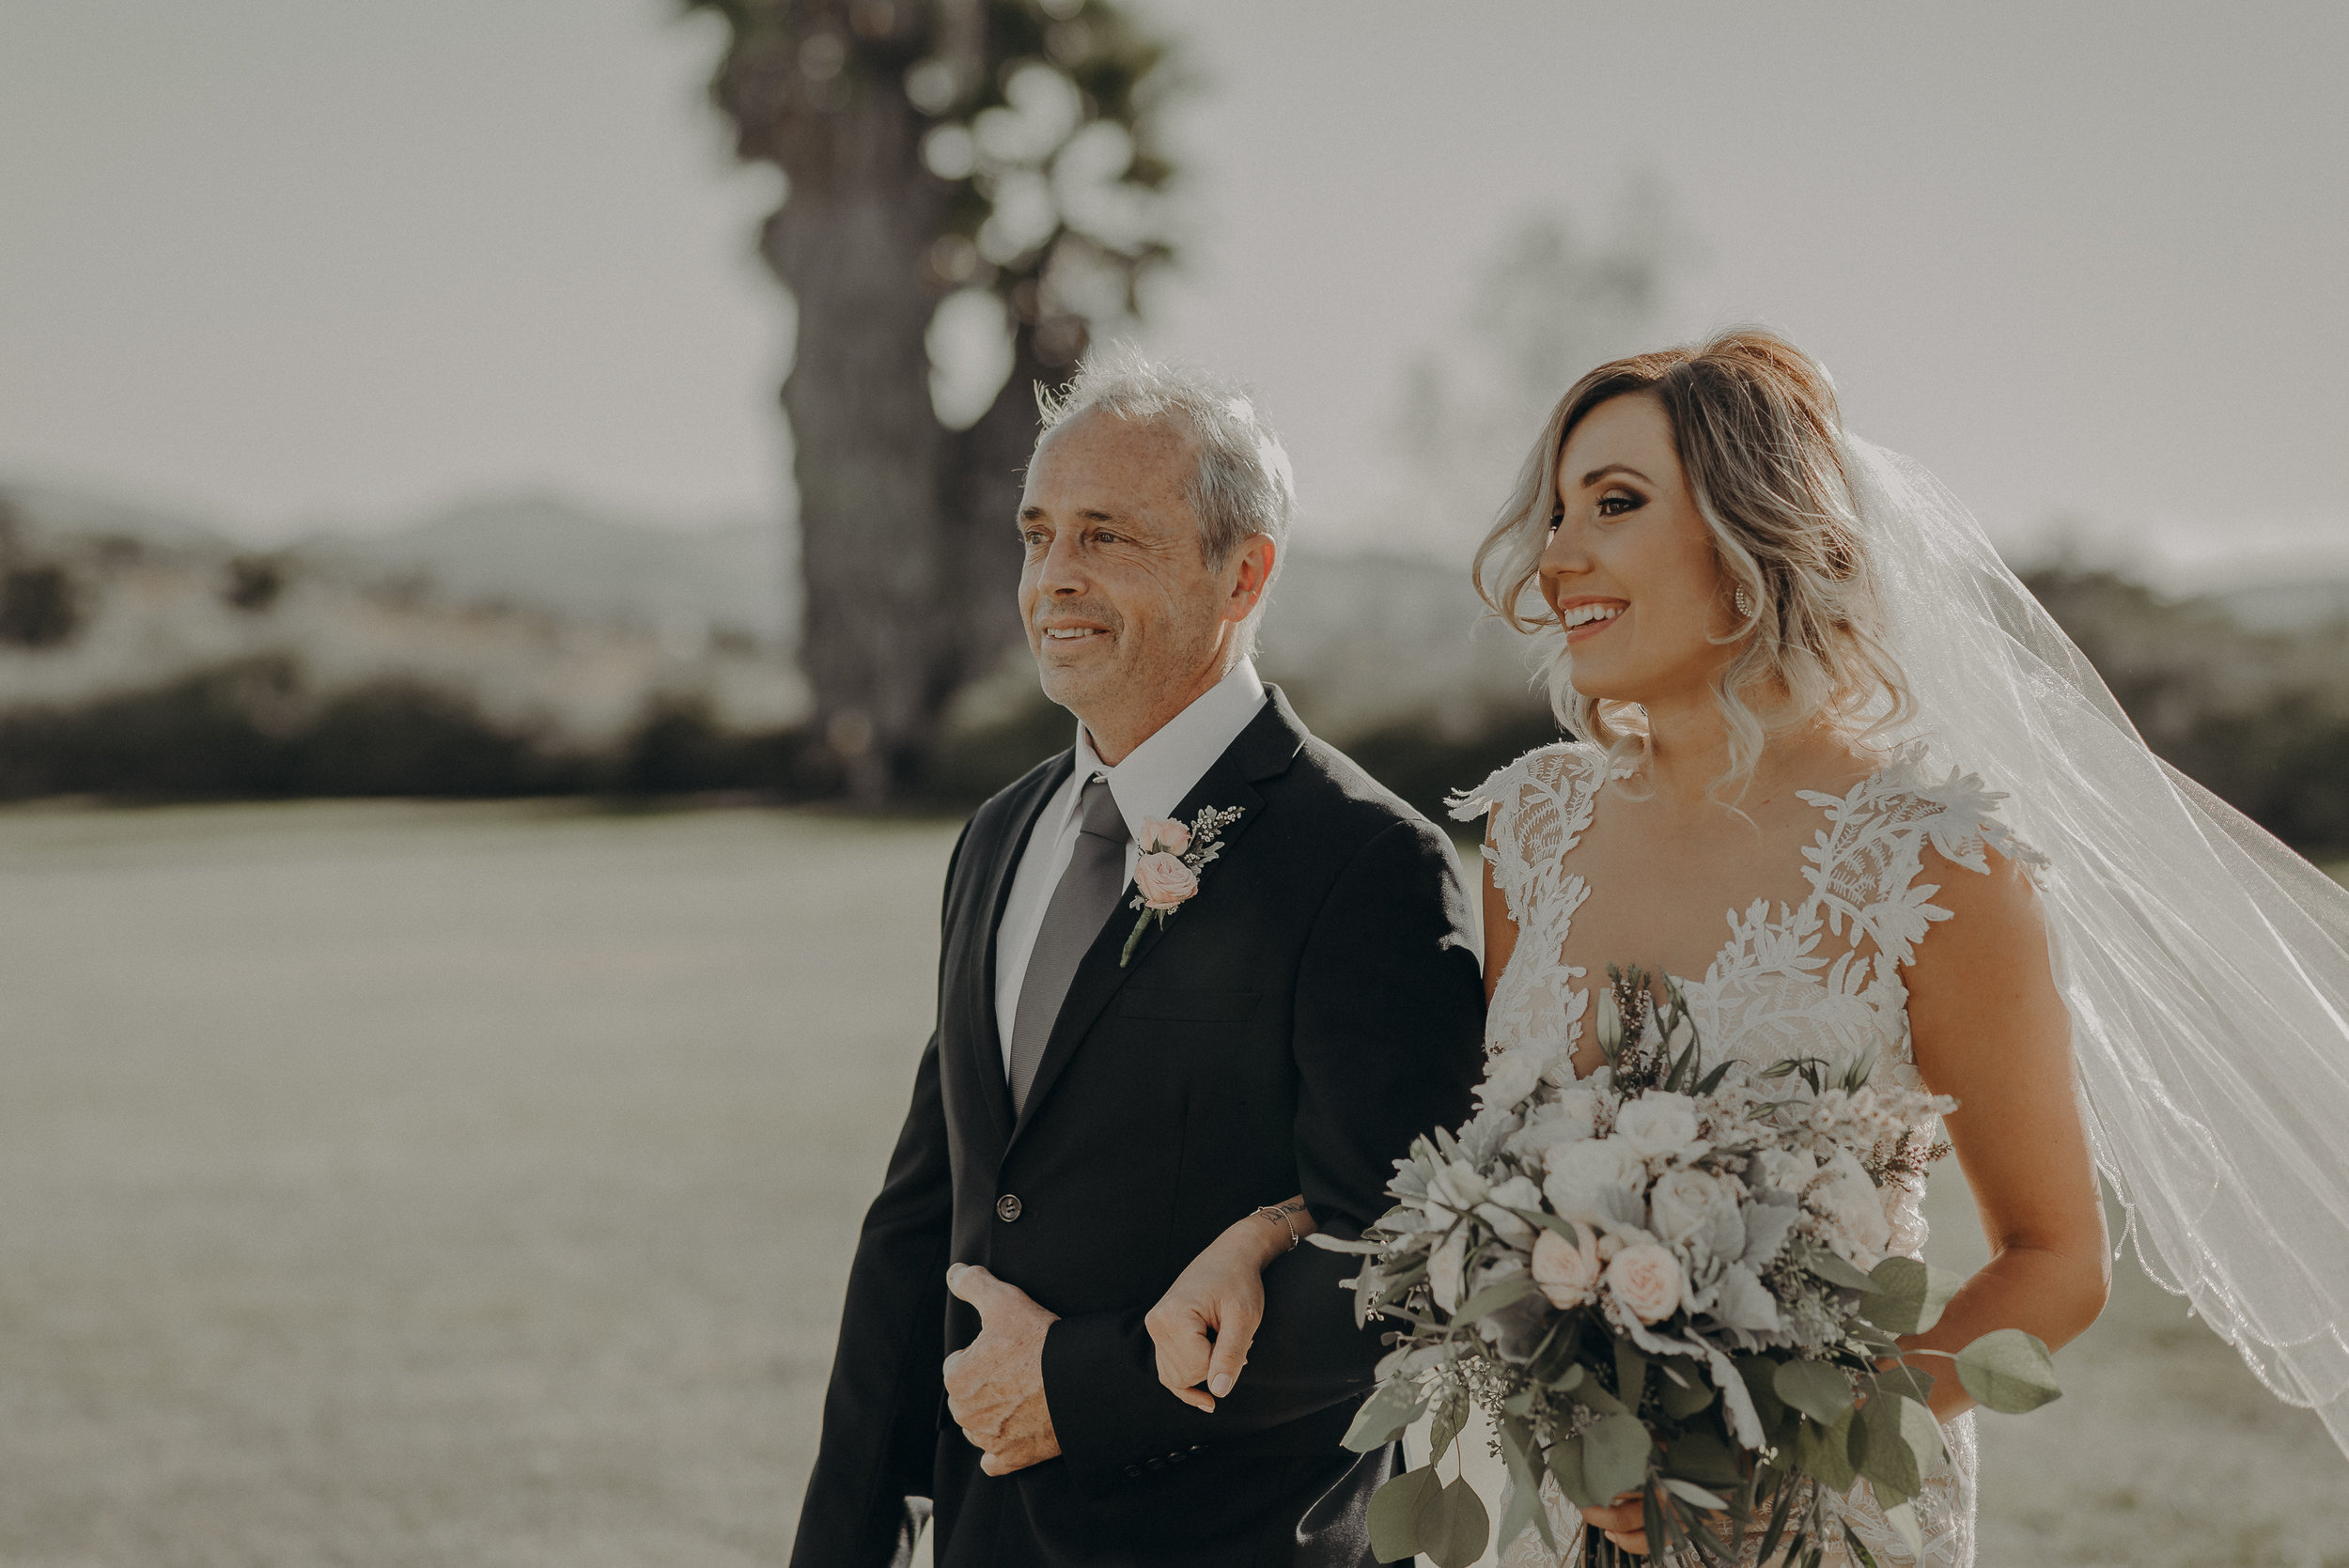 Isaiah + Taylor Photography - Los Angeles Wedding Photographer - Open Air Resort Wedding-54.jpg